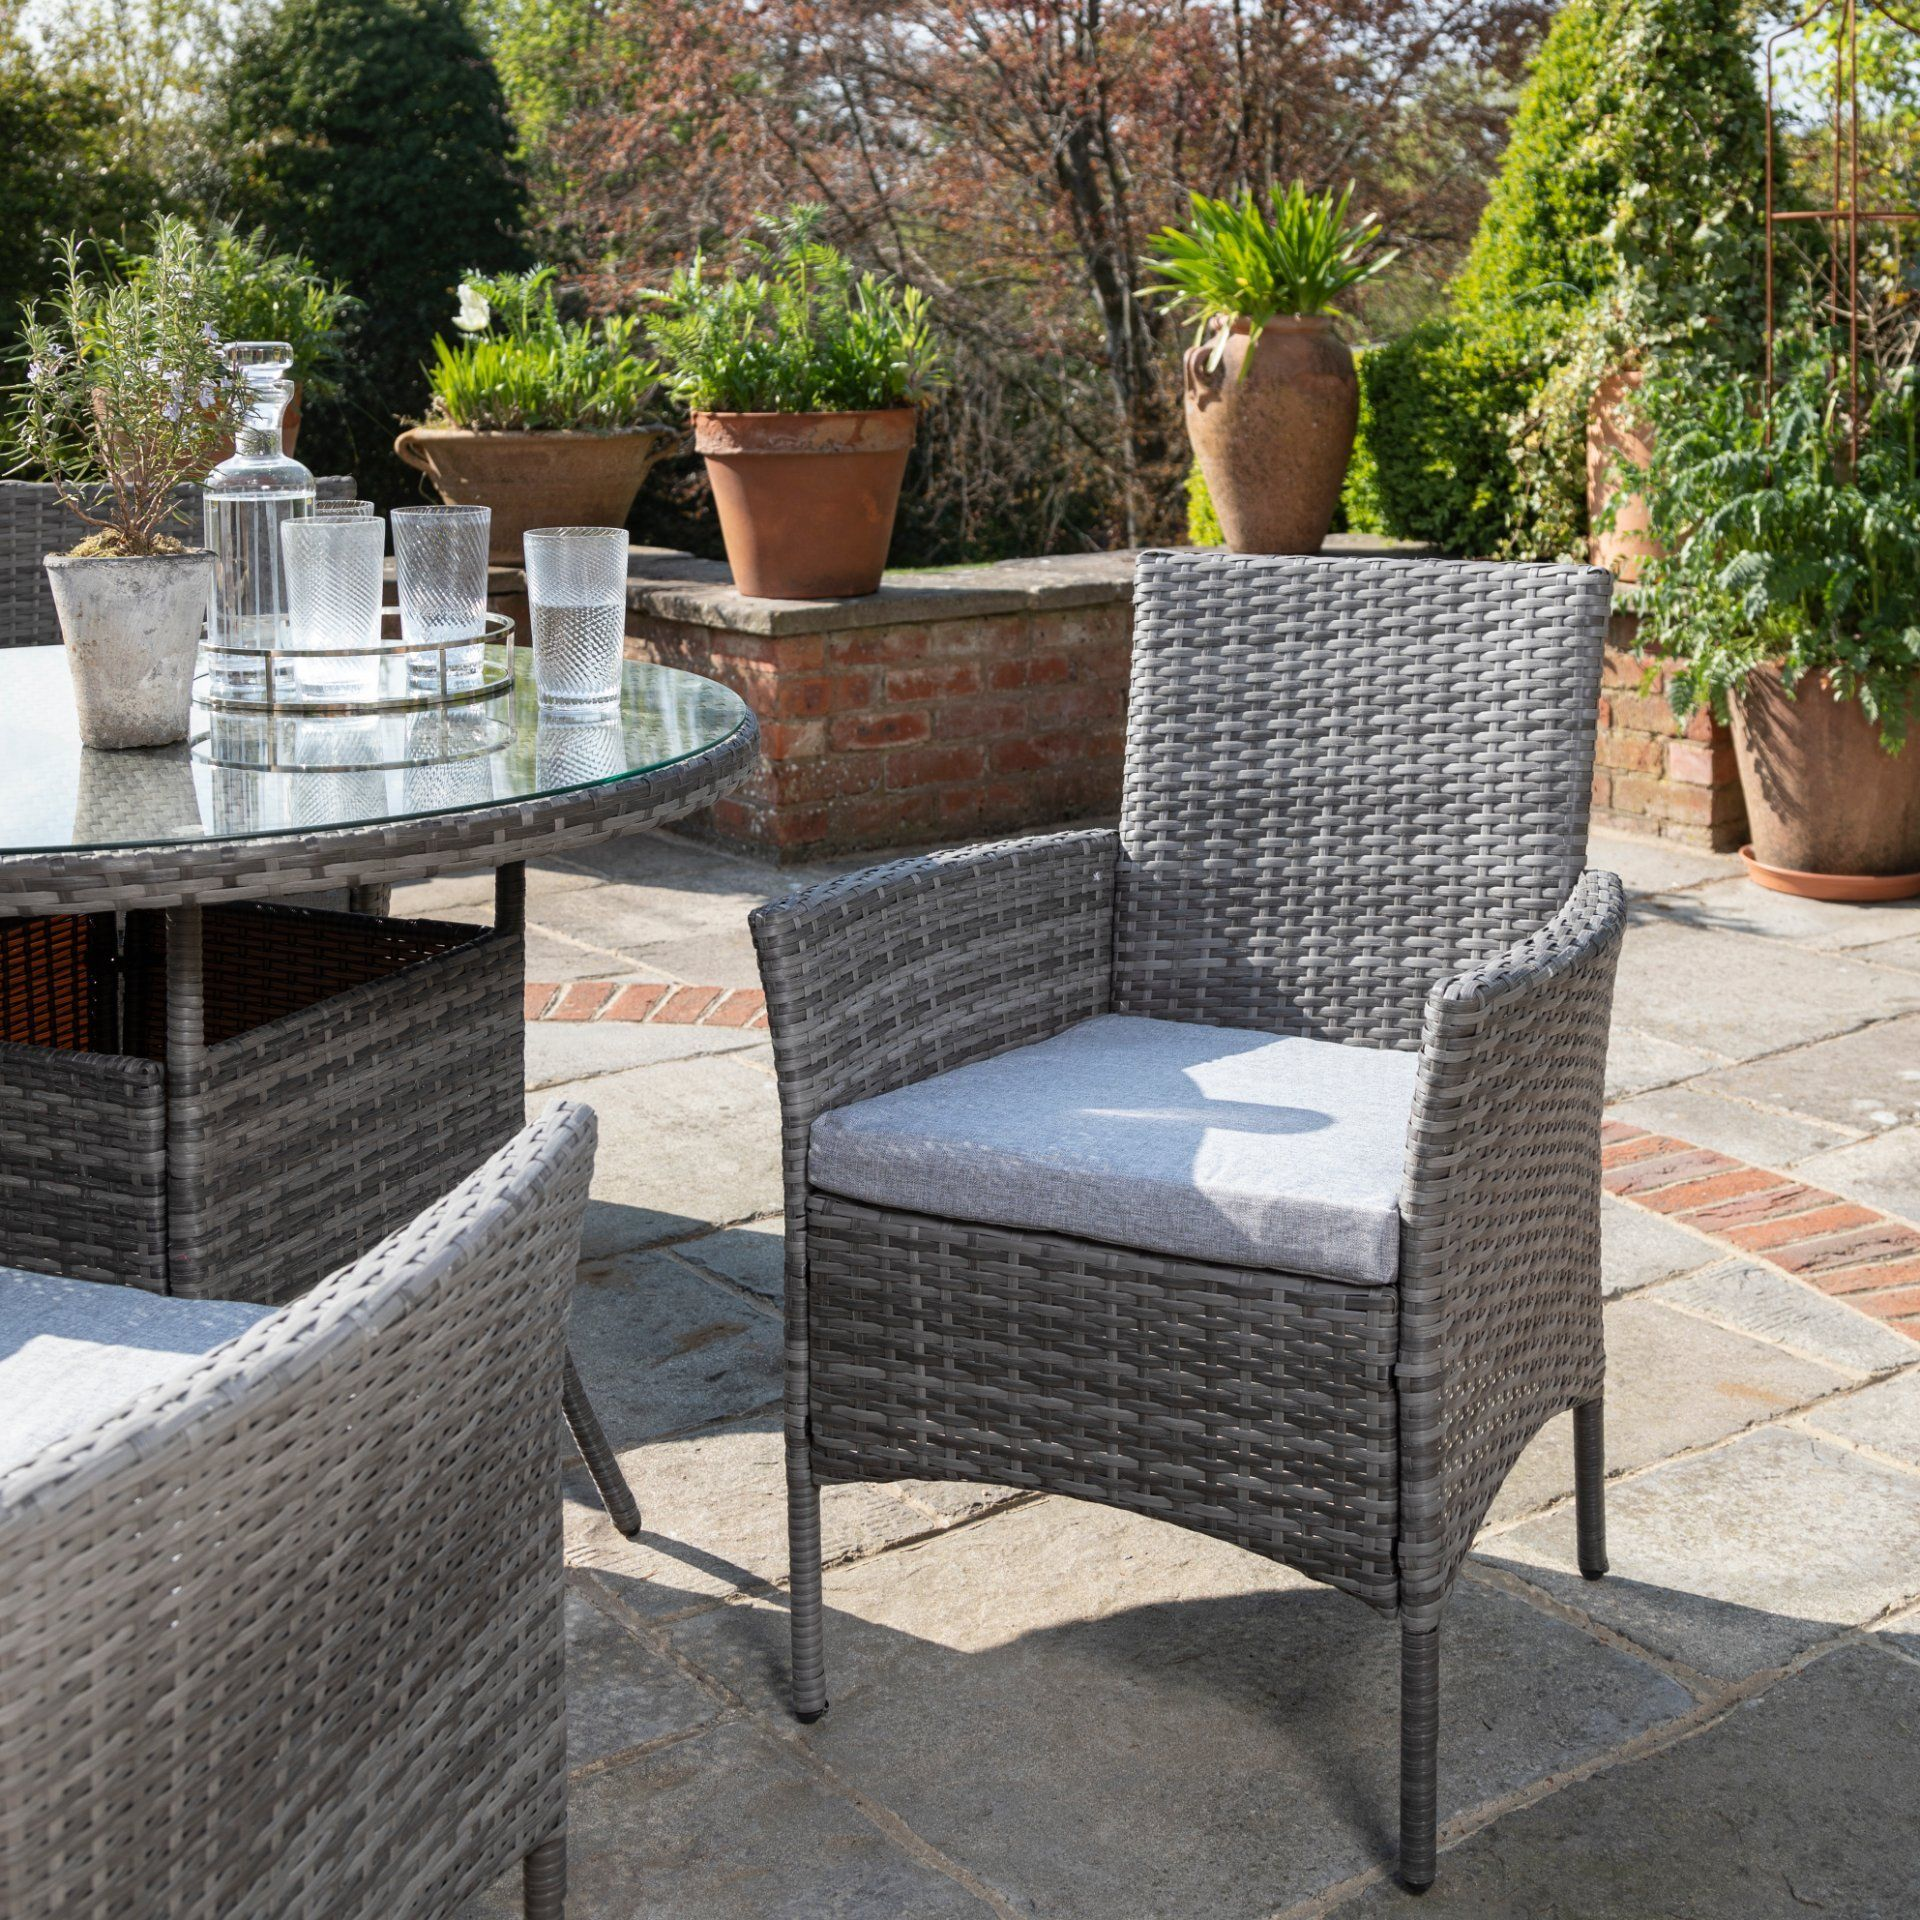 4 Seater Rattan Round Dining Table Chair Set Grey Laura James